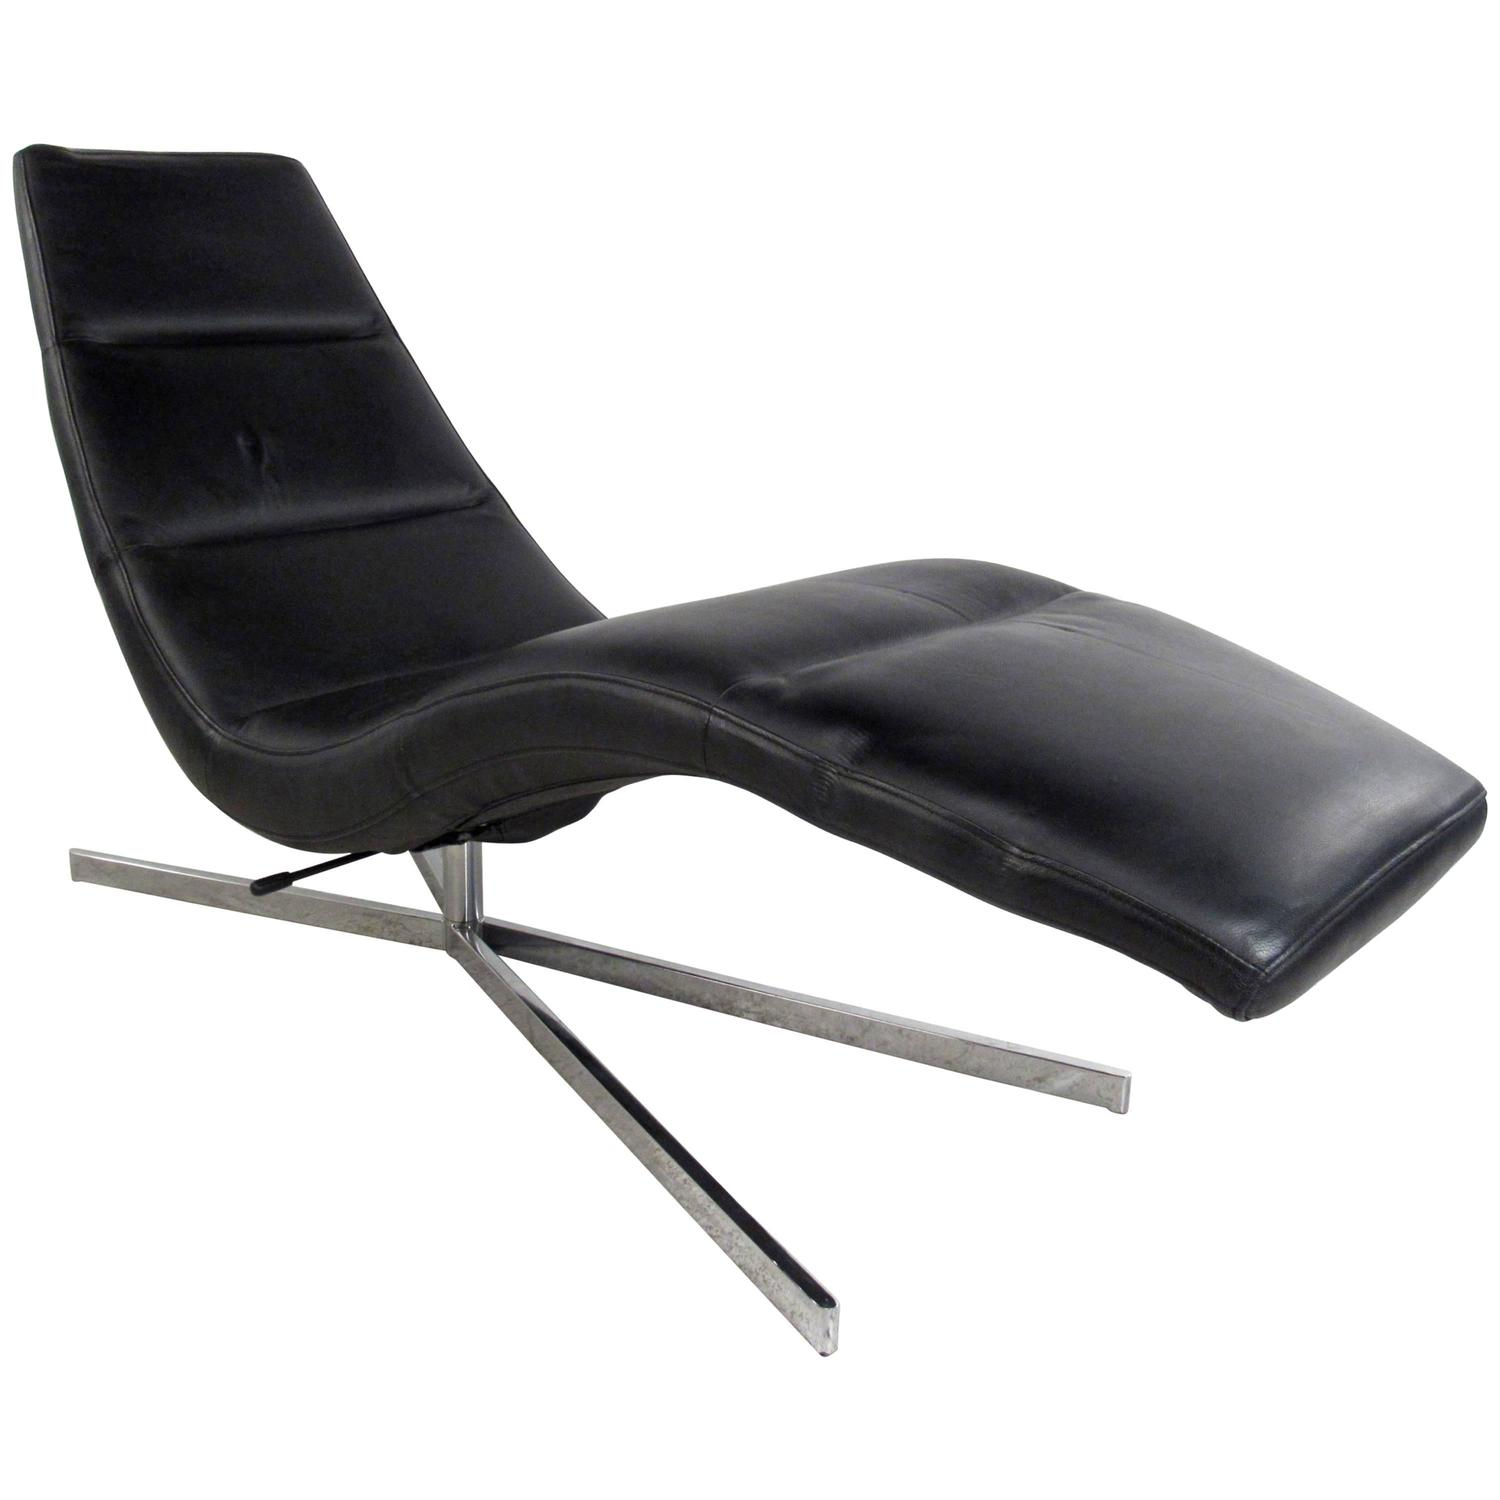 Danish modern leather chaise lounge swivel lounge chair for Chaise leather lounges